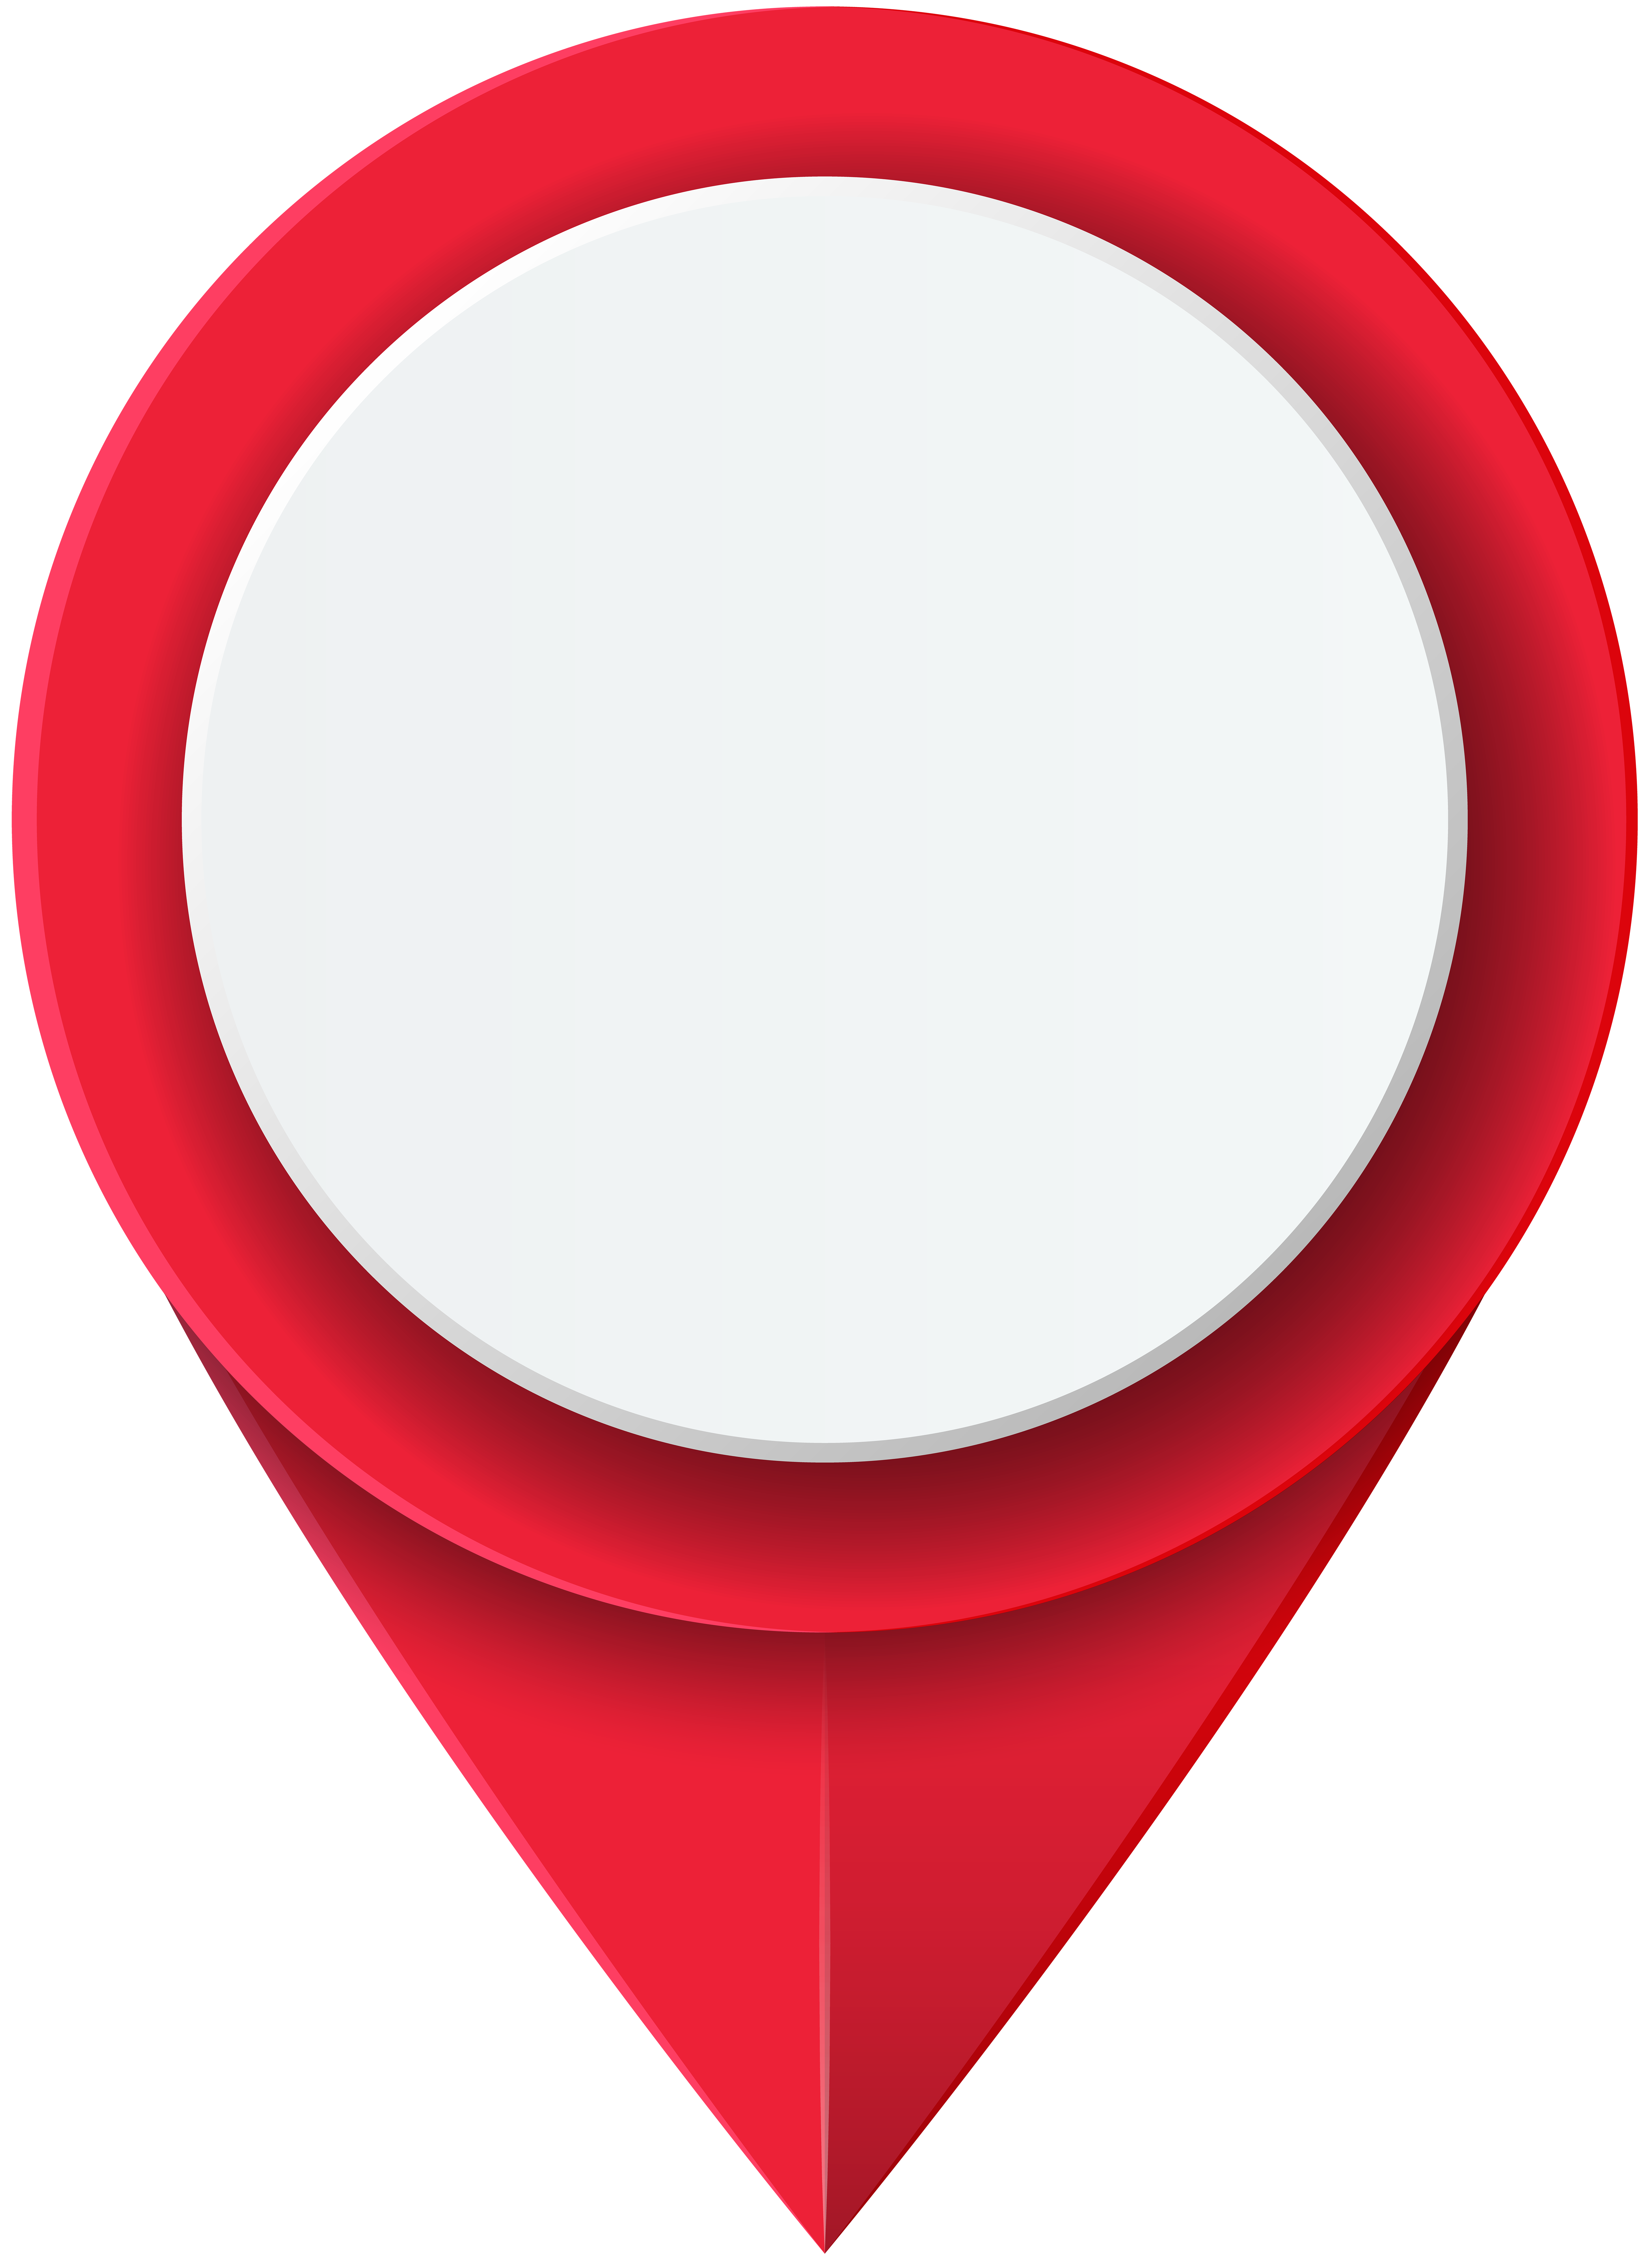 Location tag png. Clip art image gallery